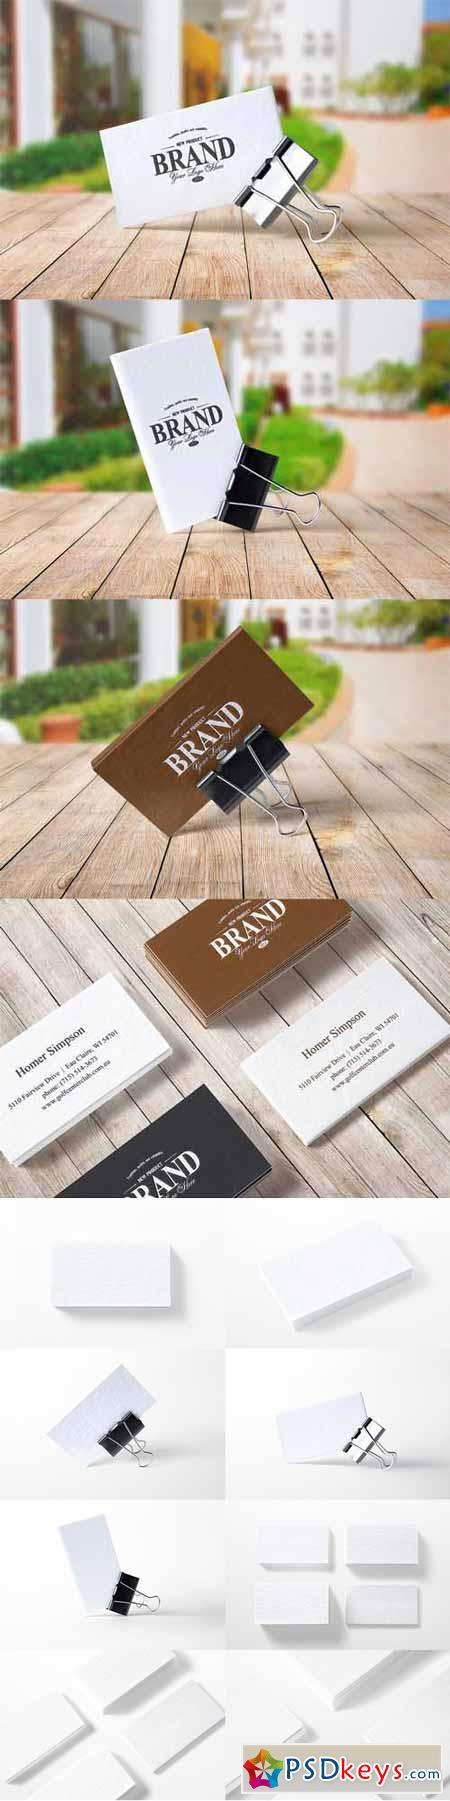 8 realistic business card mockups 66619 free download photoshop 8 realistic business card mockups 66619 reheart Gallery